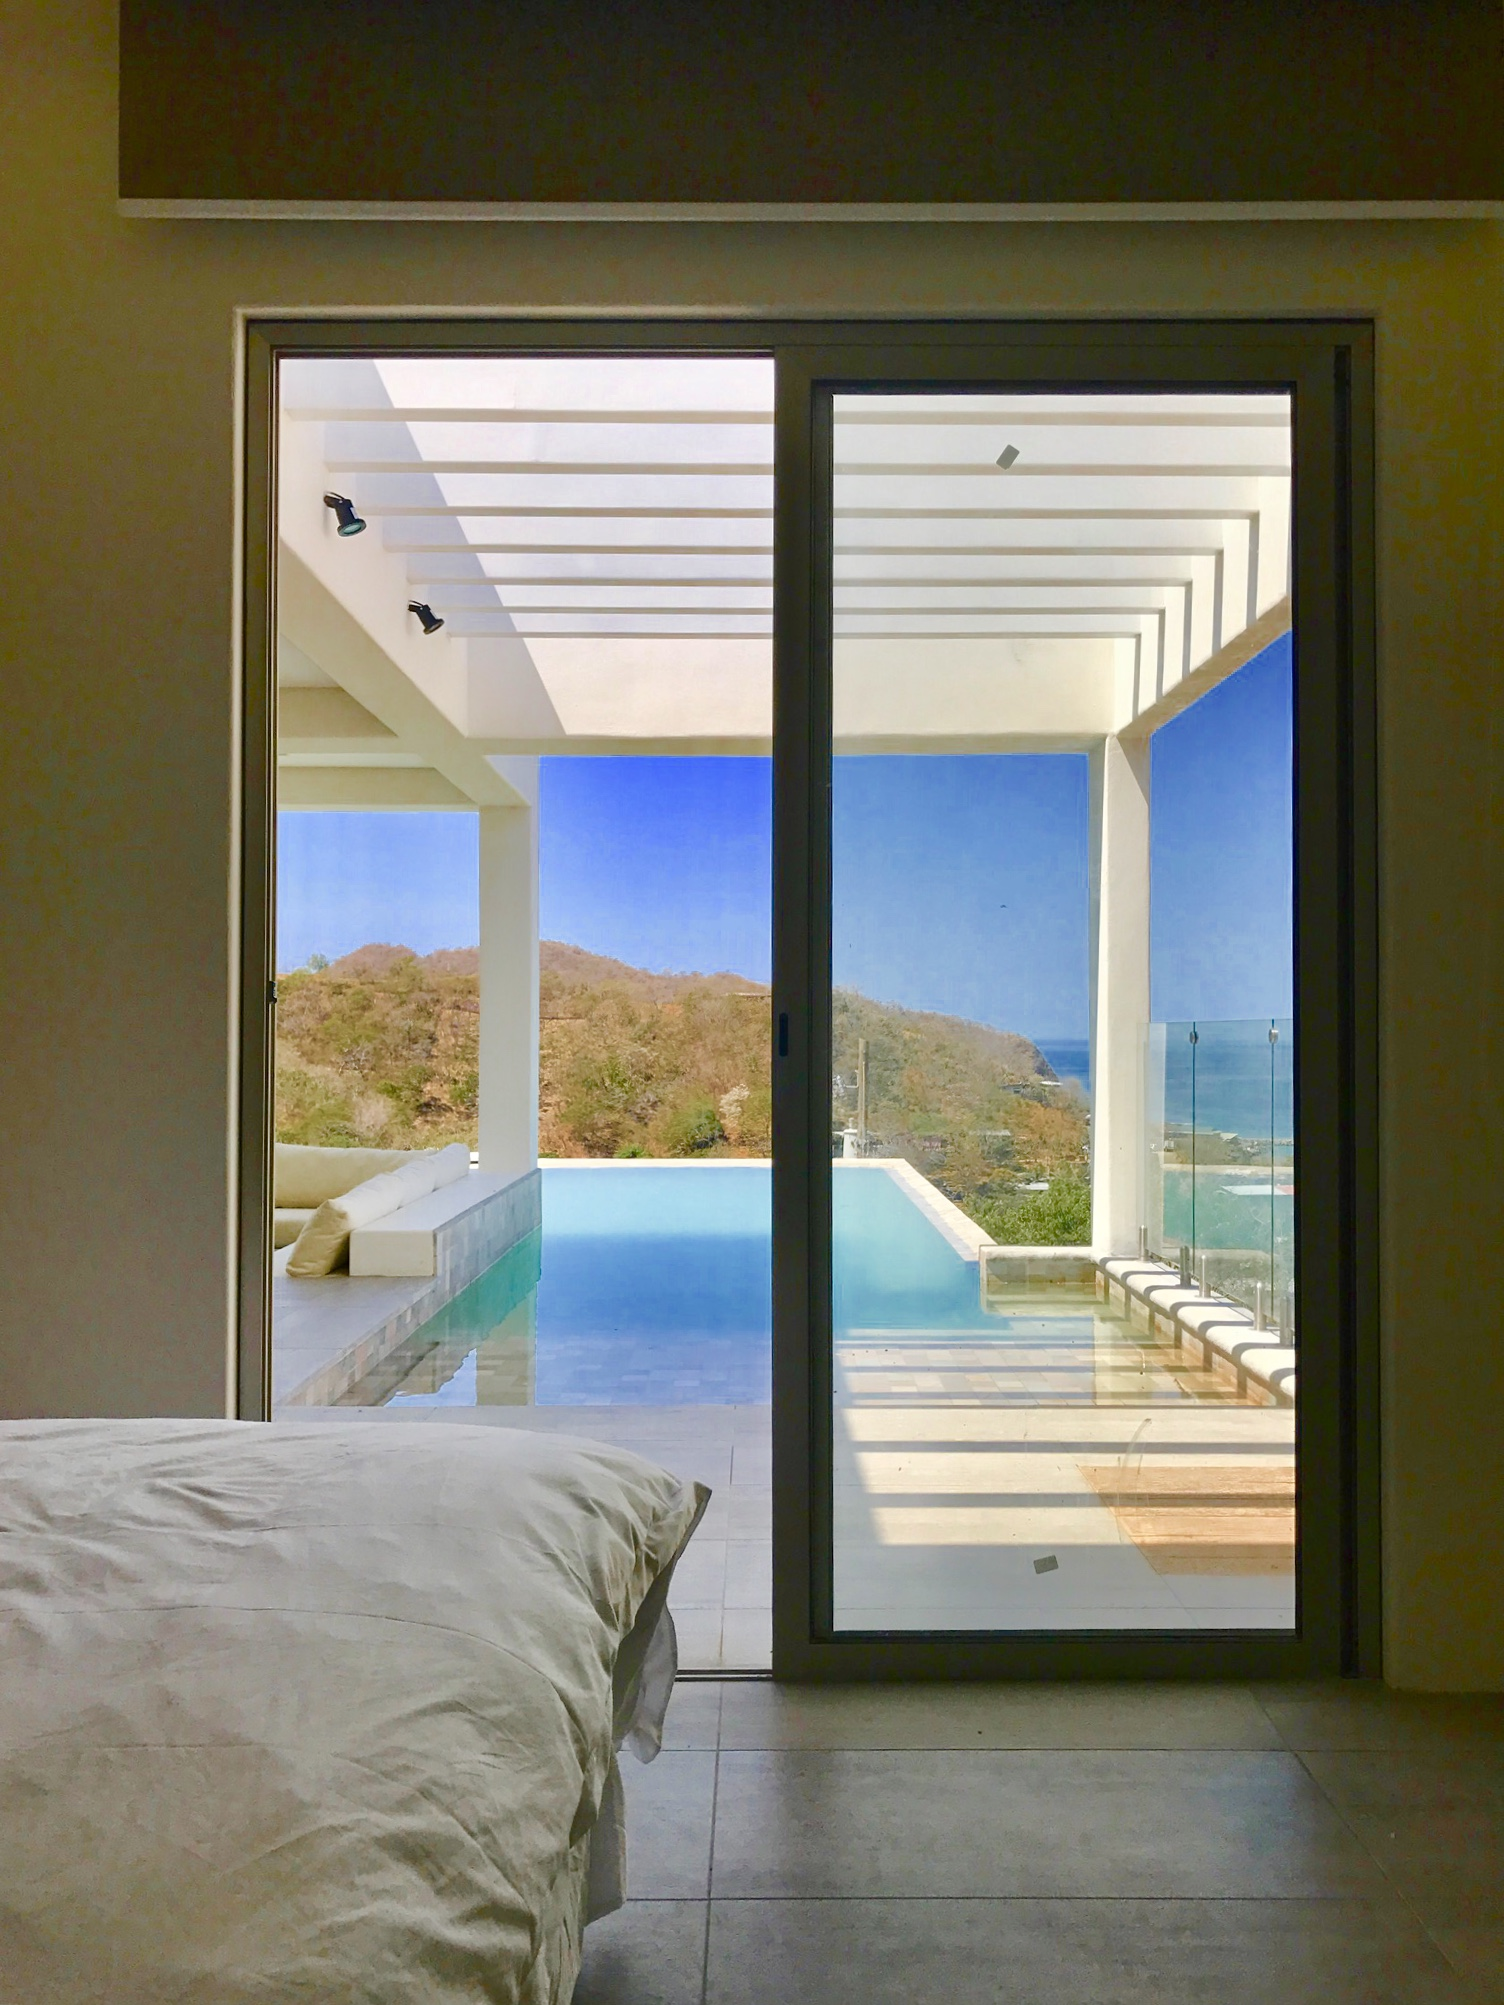 Luxurious pool, overview, architect design, Acuarela Dream Residence